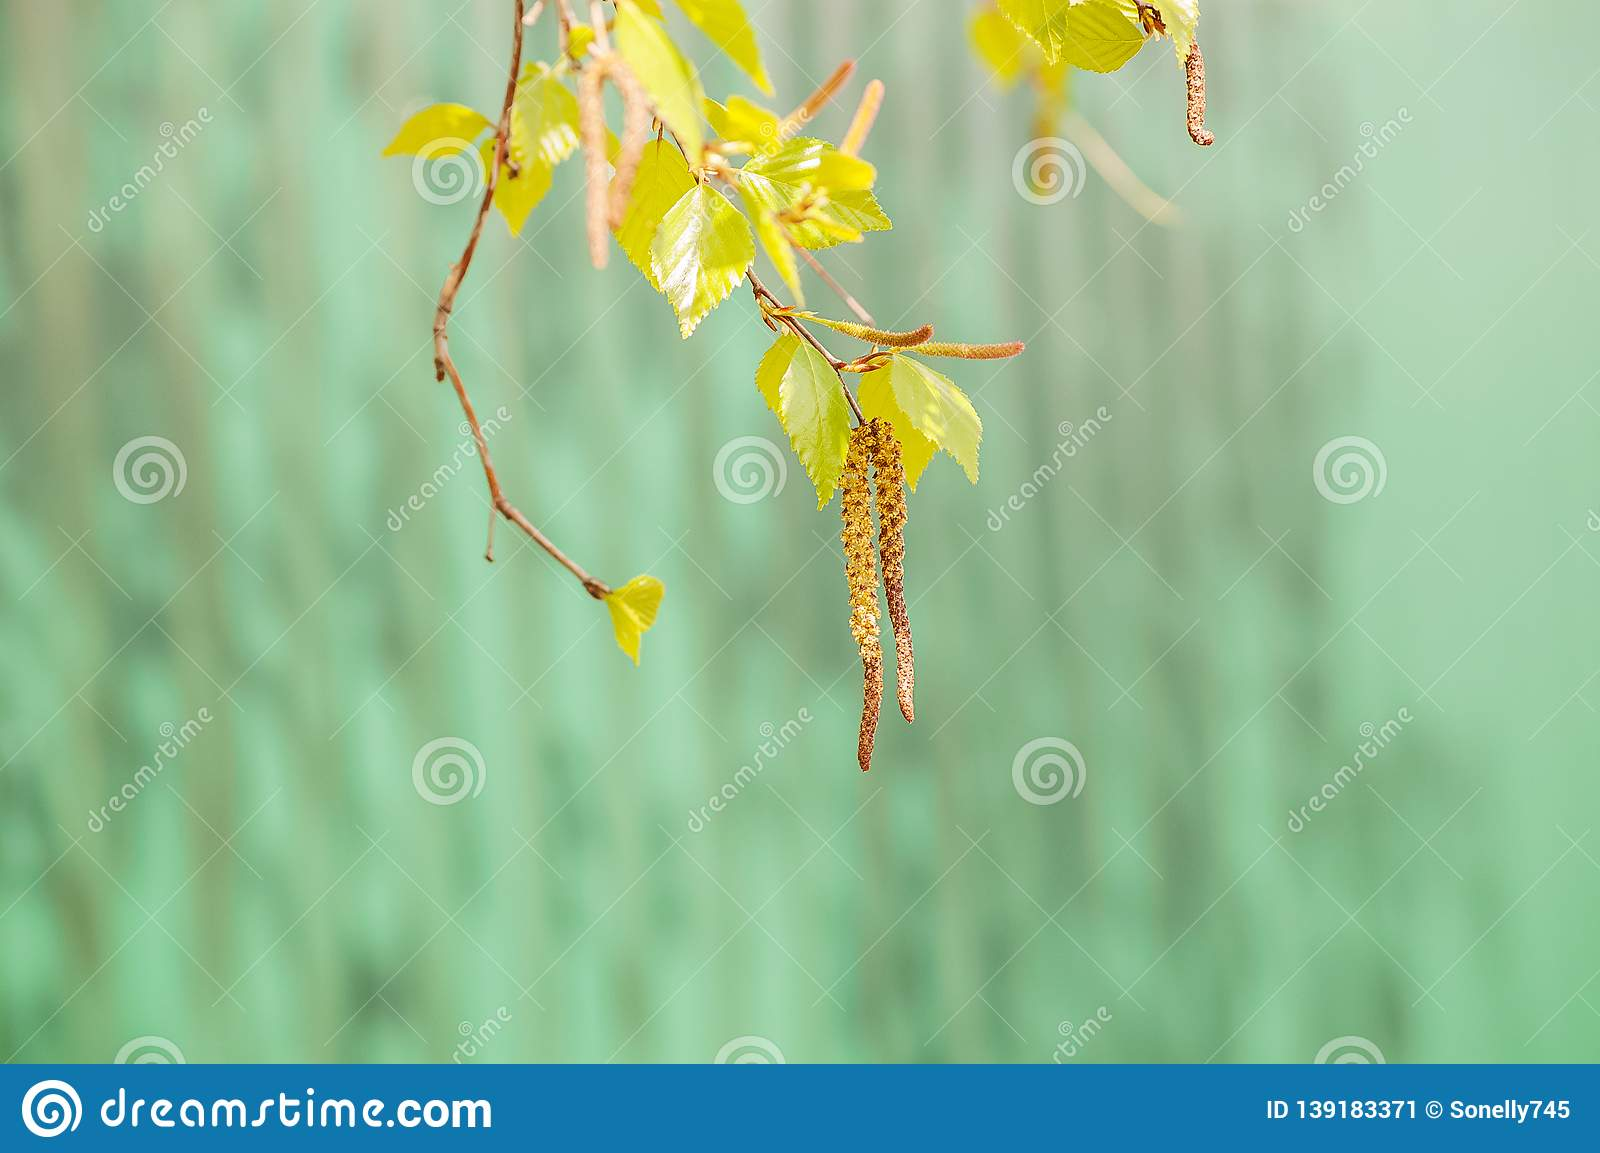 Spring background with blossoming birch closeup and copy space. Birch branch with earring on a green turquoise background